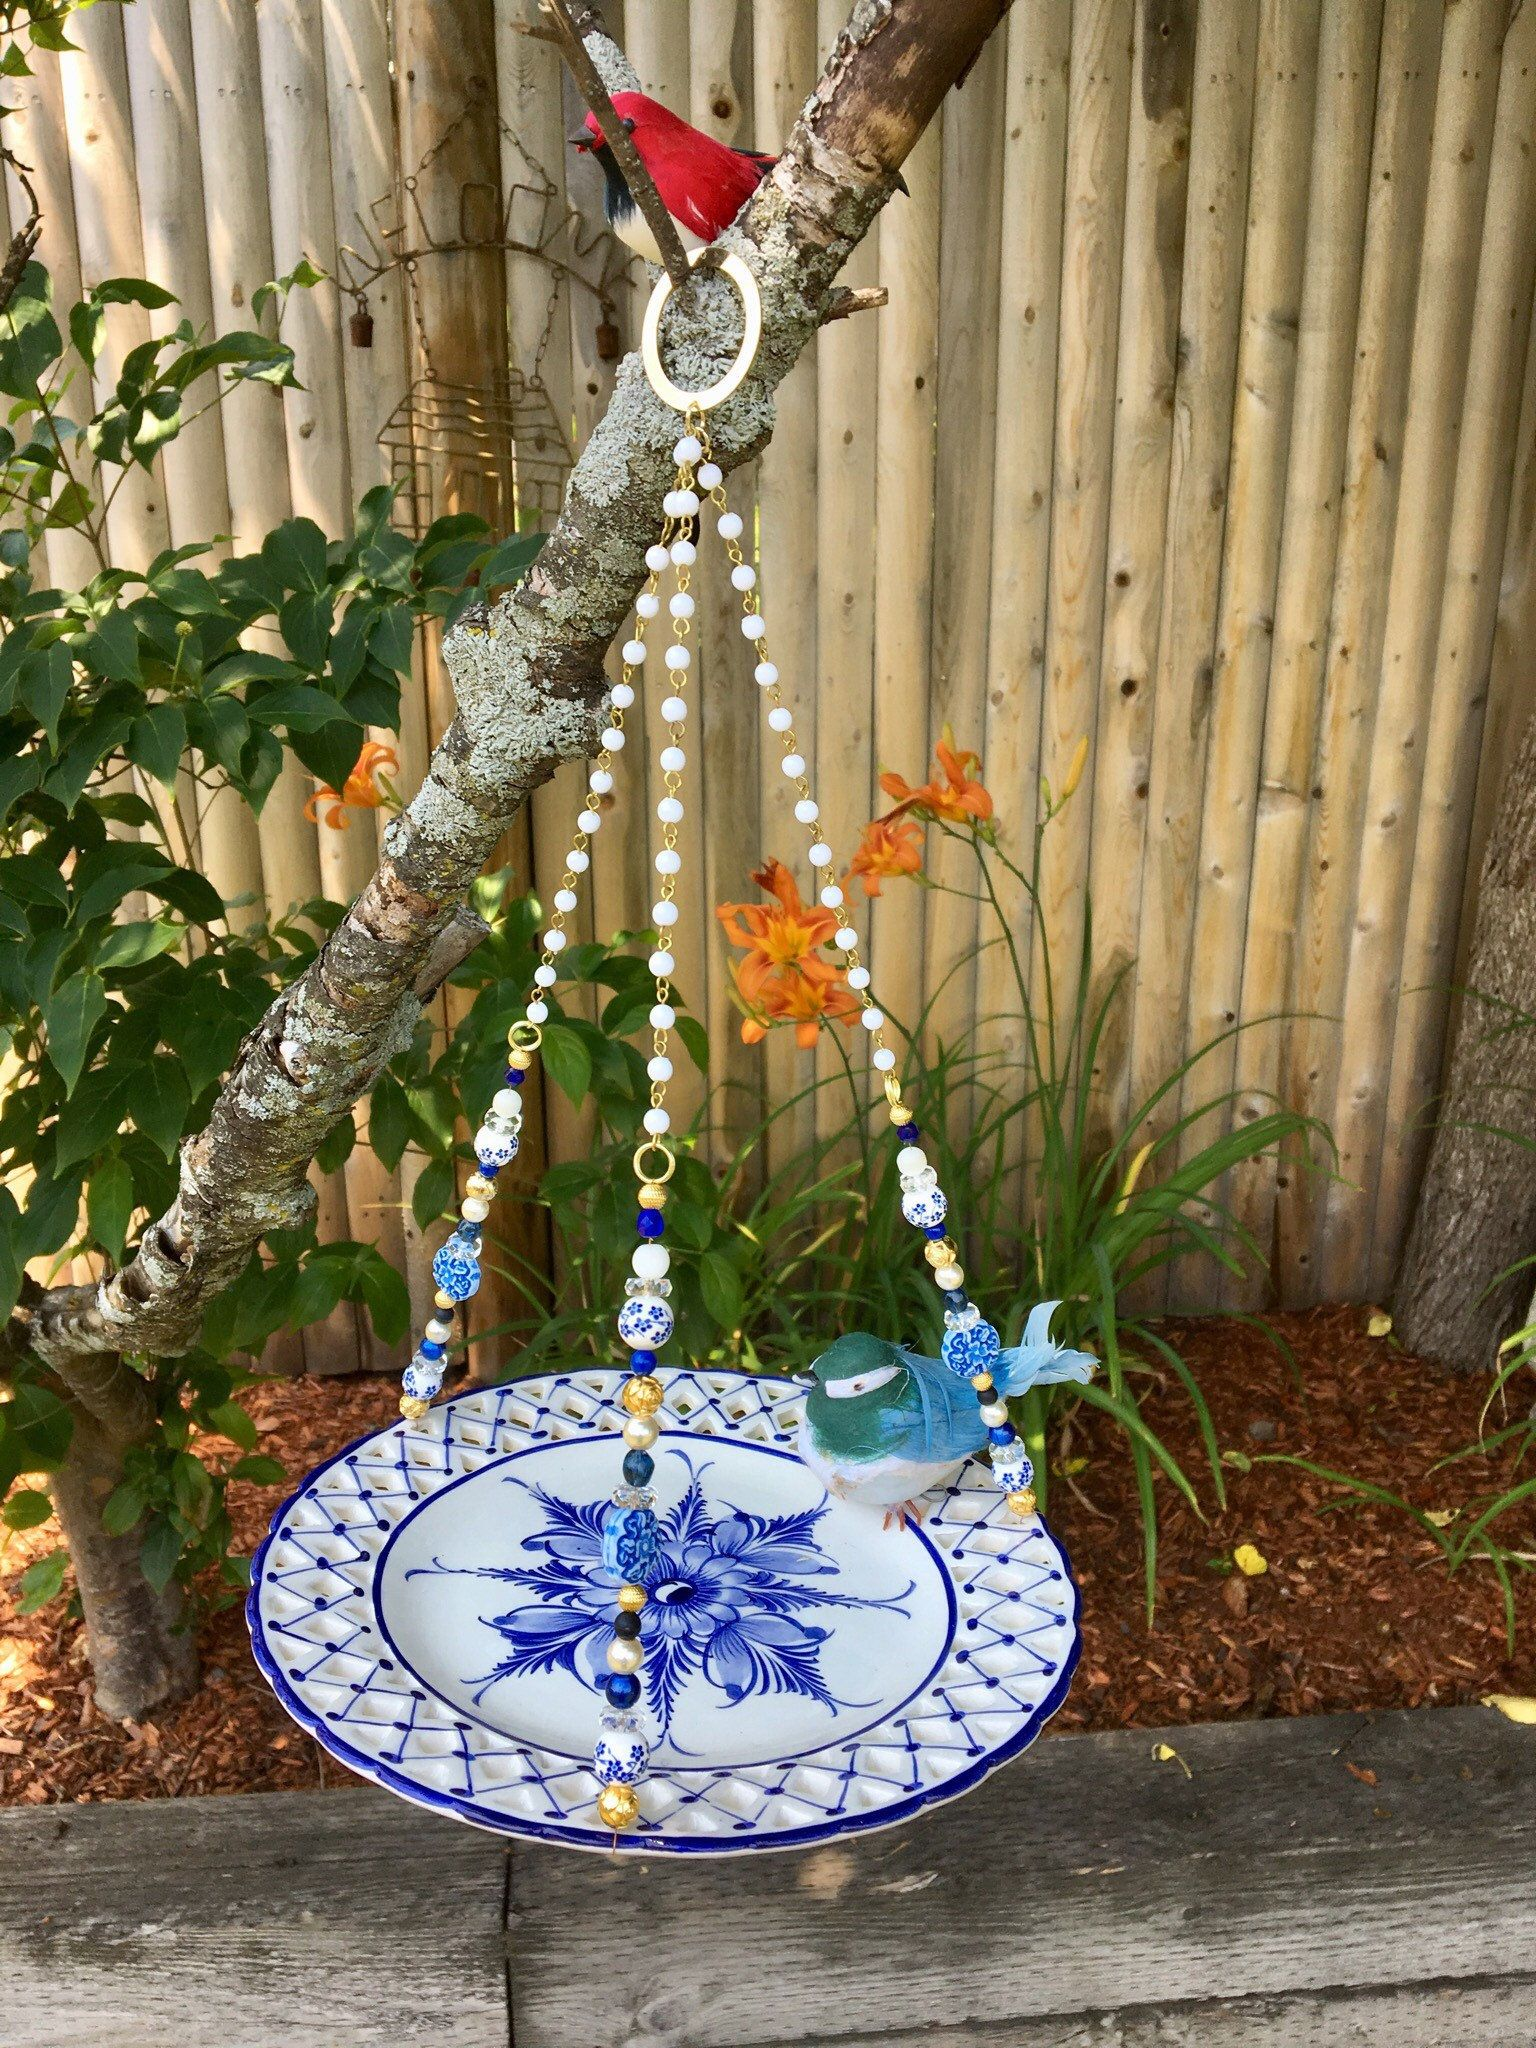 Blue White Dish Bird Feeder, Repurposed Plate Bird Feeder